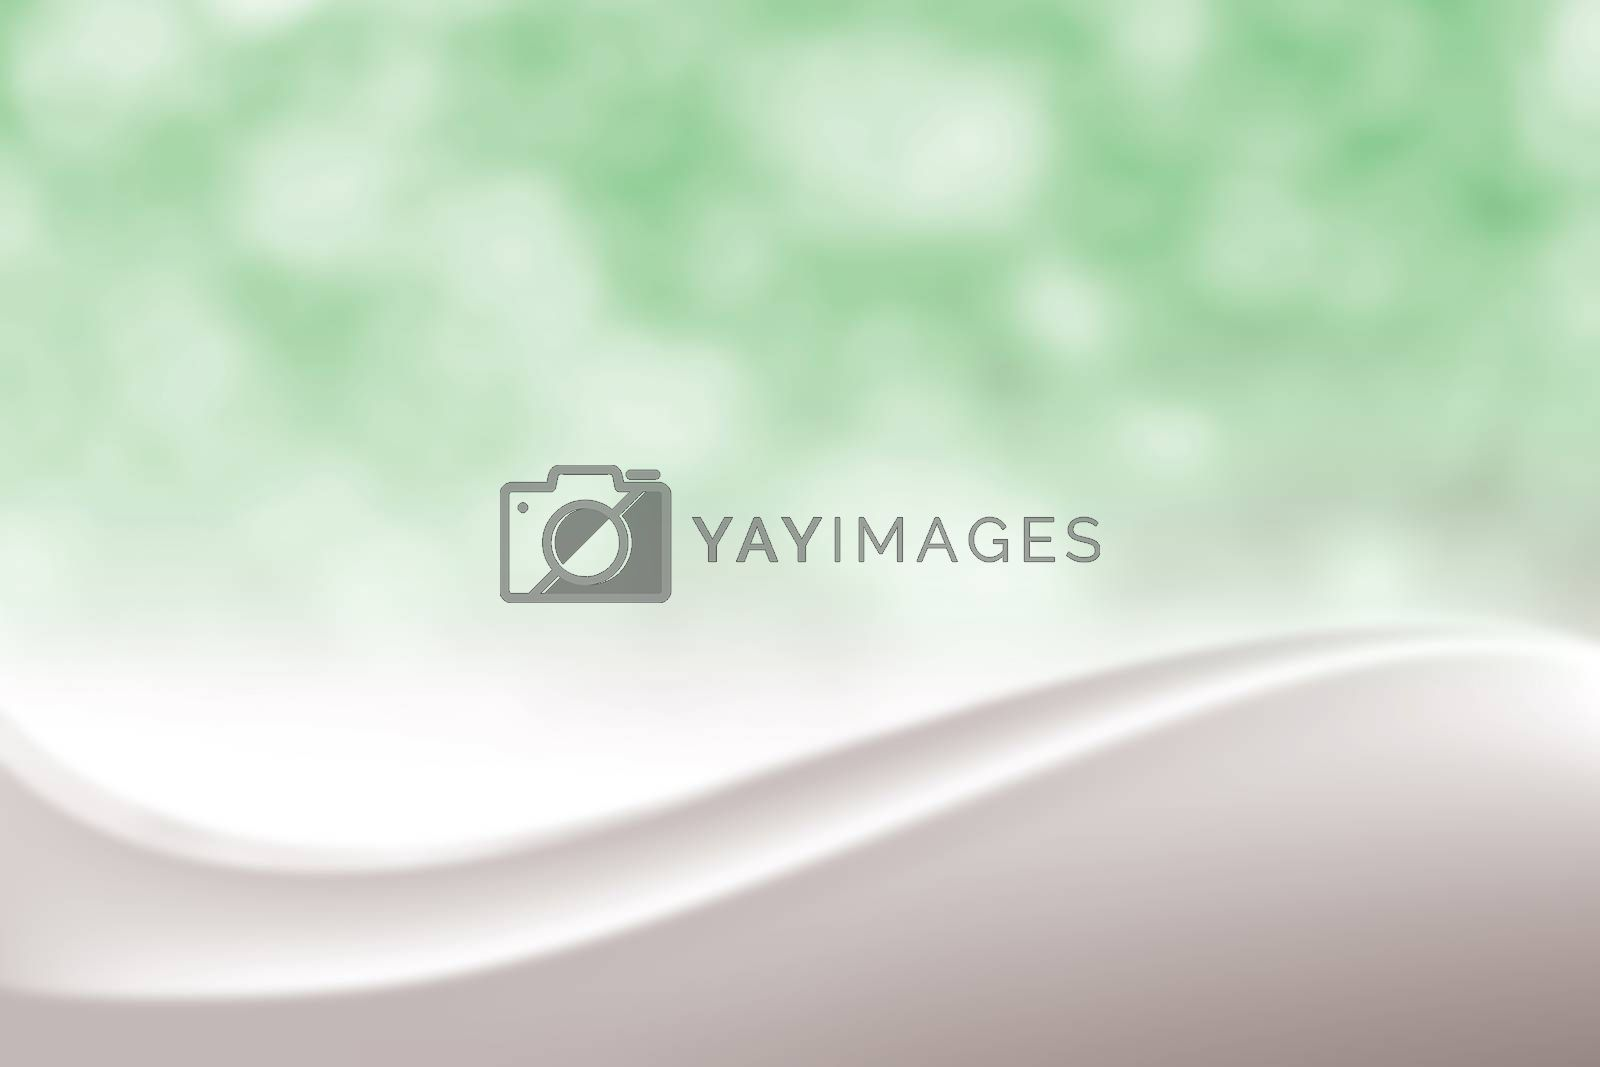 Royalty free image of Blurred Smooth green elegant soft beauty background, Luxurious Cosmetic backdrop Bokeh soft light shade, Gradient color tone sweet petal blur style luxury Abstract blurry colorful smooth illustration by cgdeaw